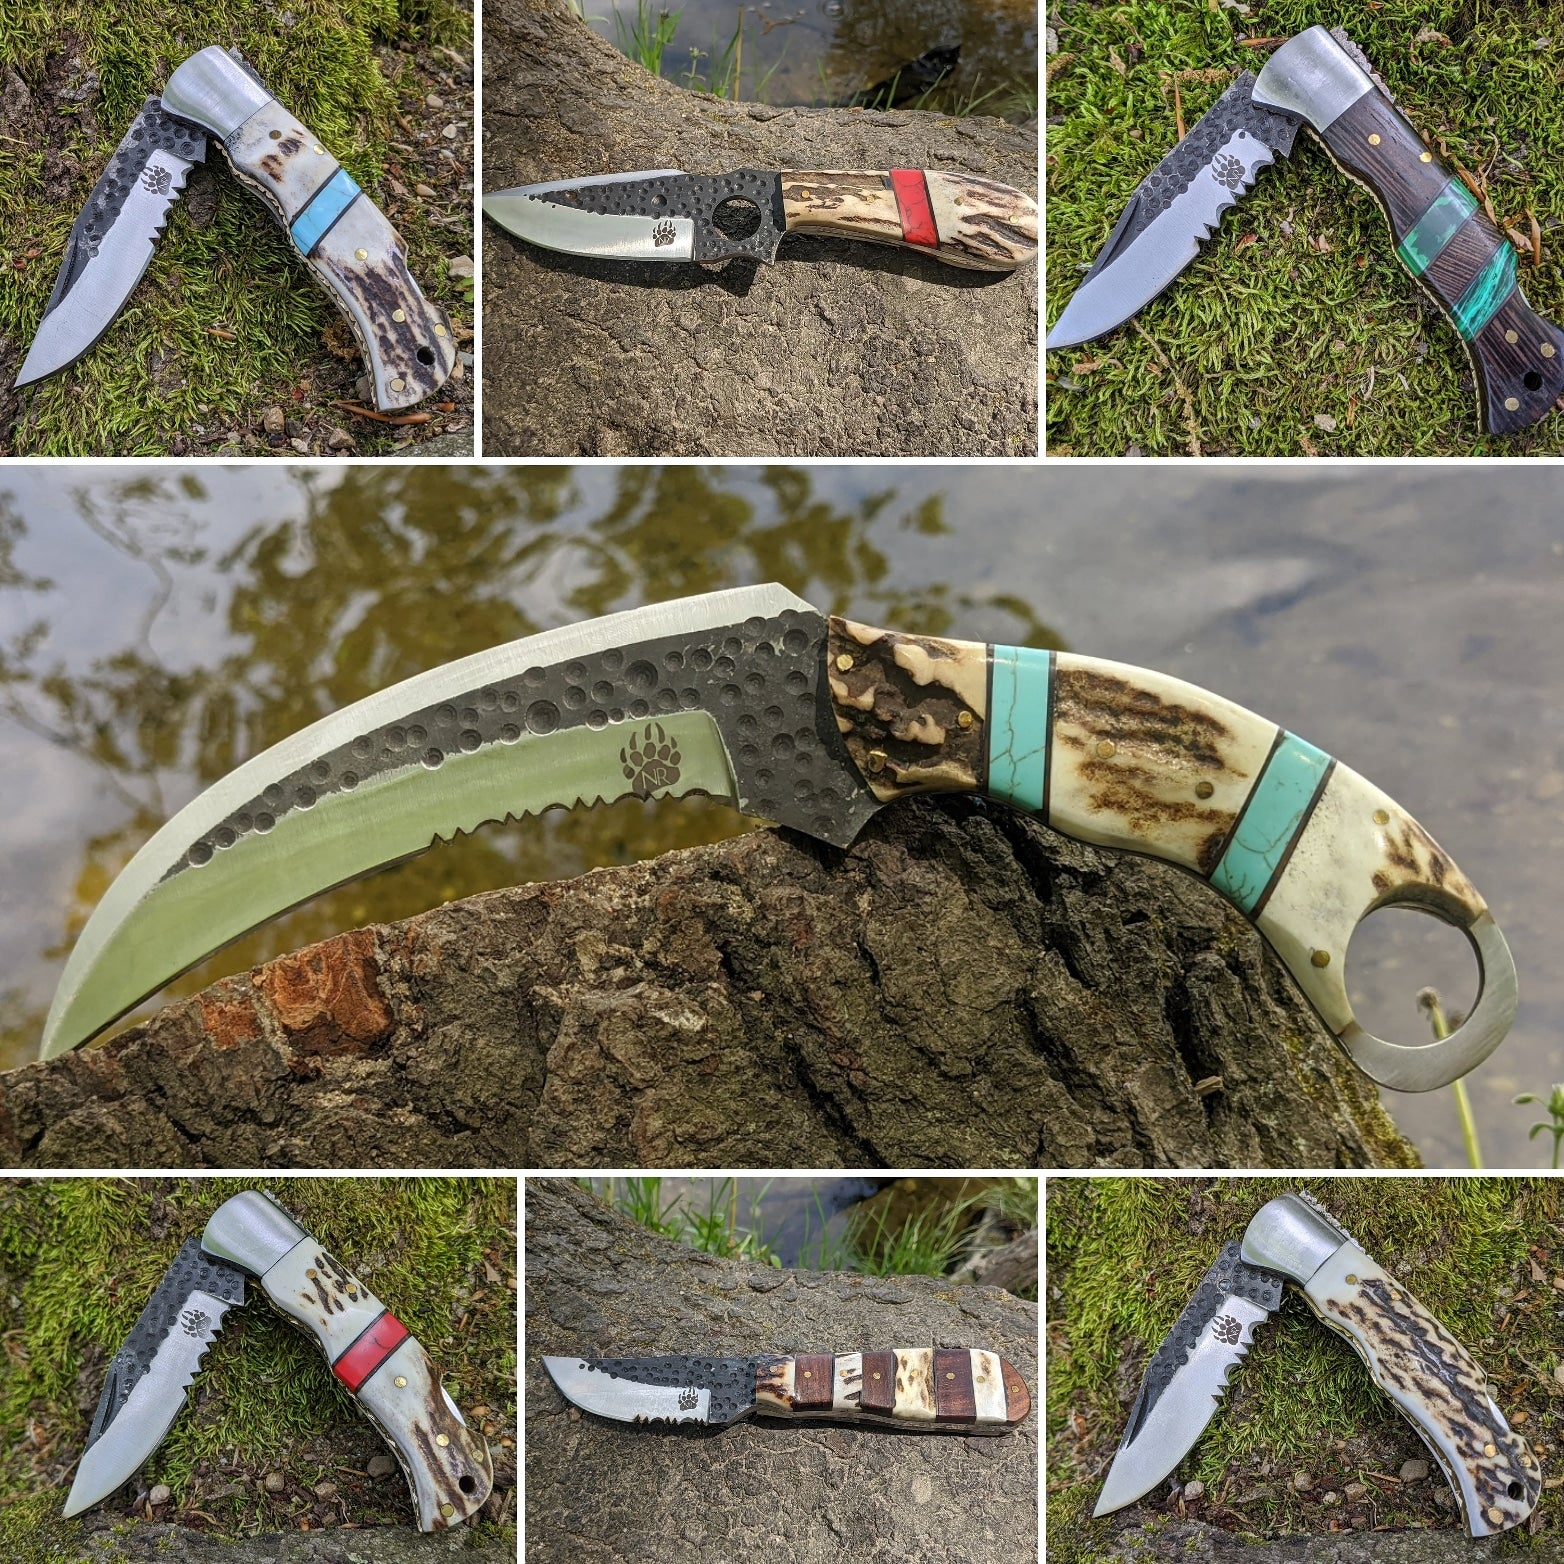 New Knives Arrived Today At North Rustic!